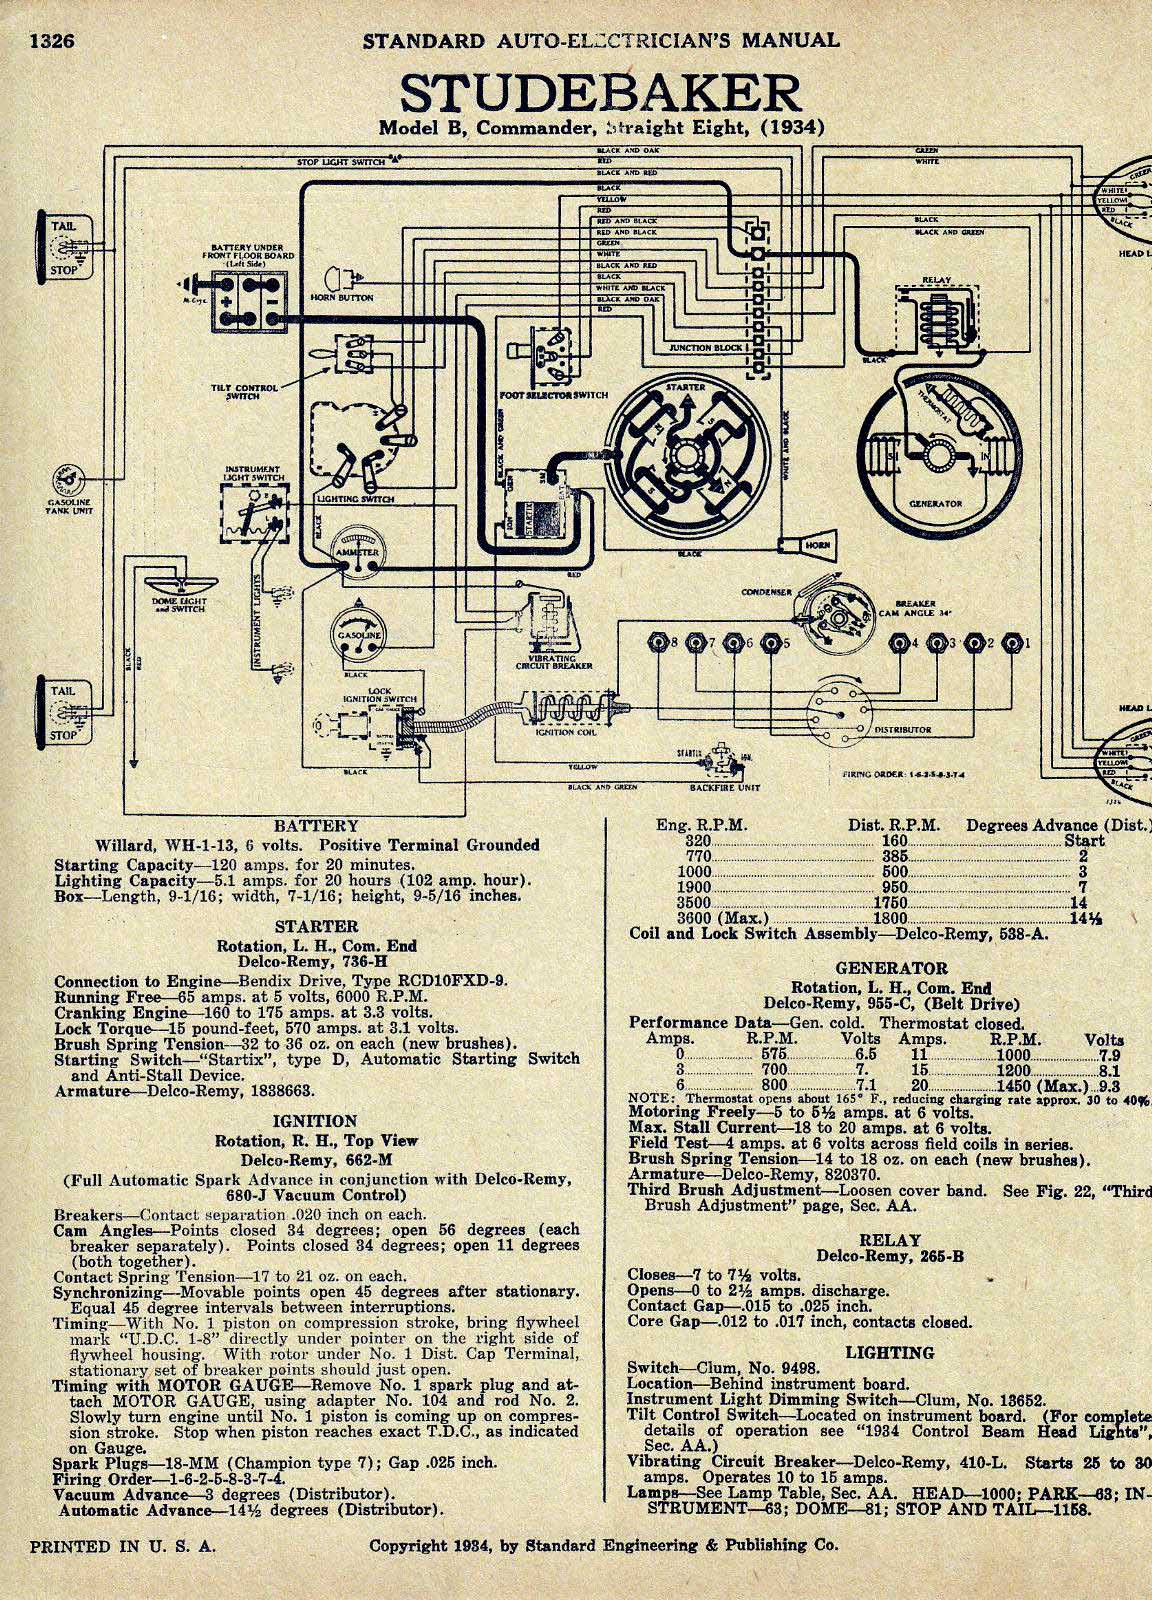 1934 Packard Wiring Diagram Will Be A Thing Pinnacle Diagrams 1955 Studebaker Champion Harness Old 2015 Mack 1956 Chevy Truck